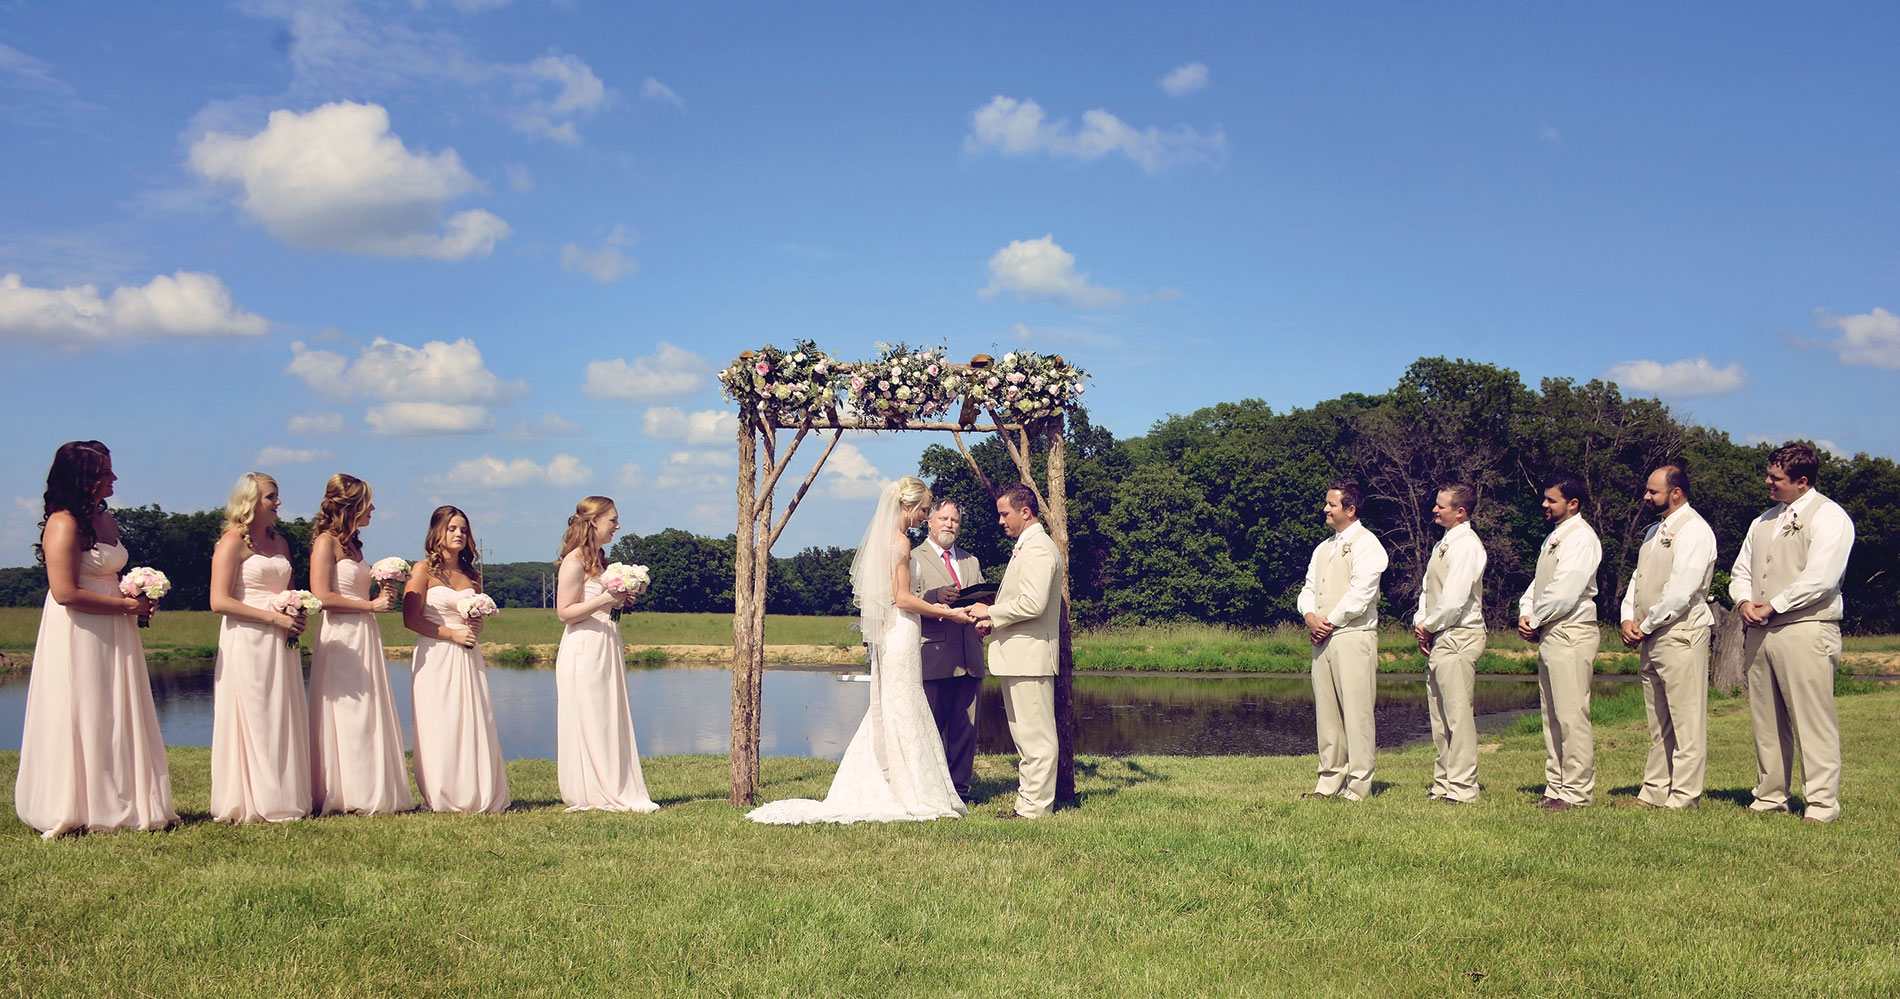 Ceremony by the lake